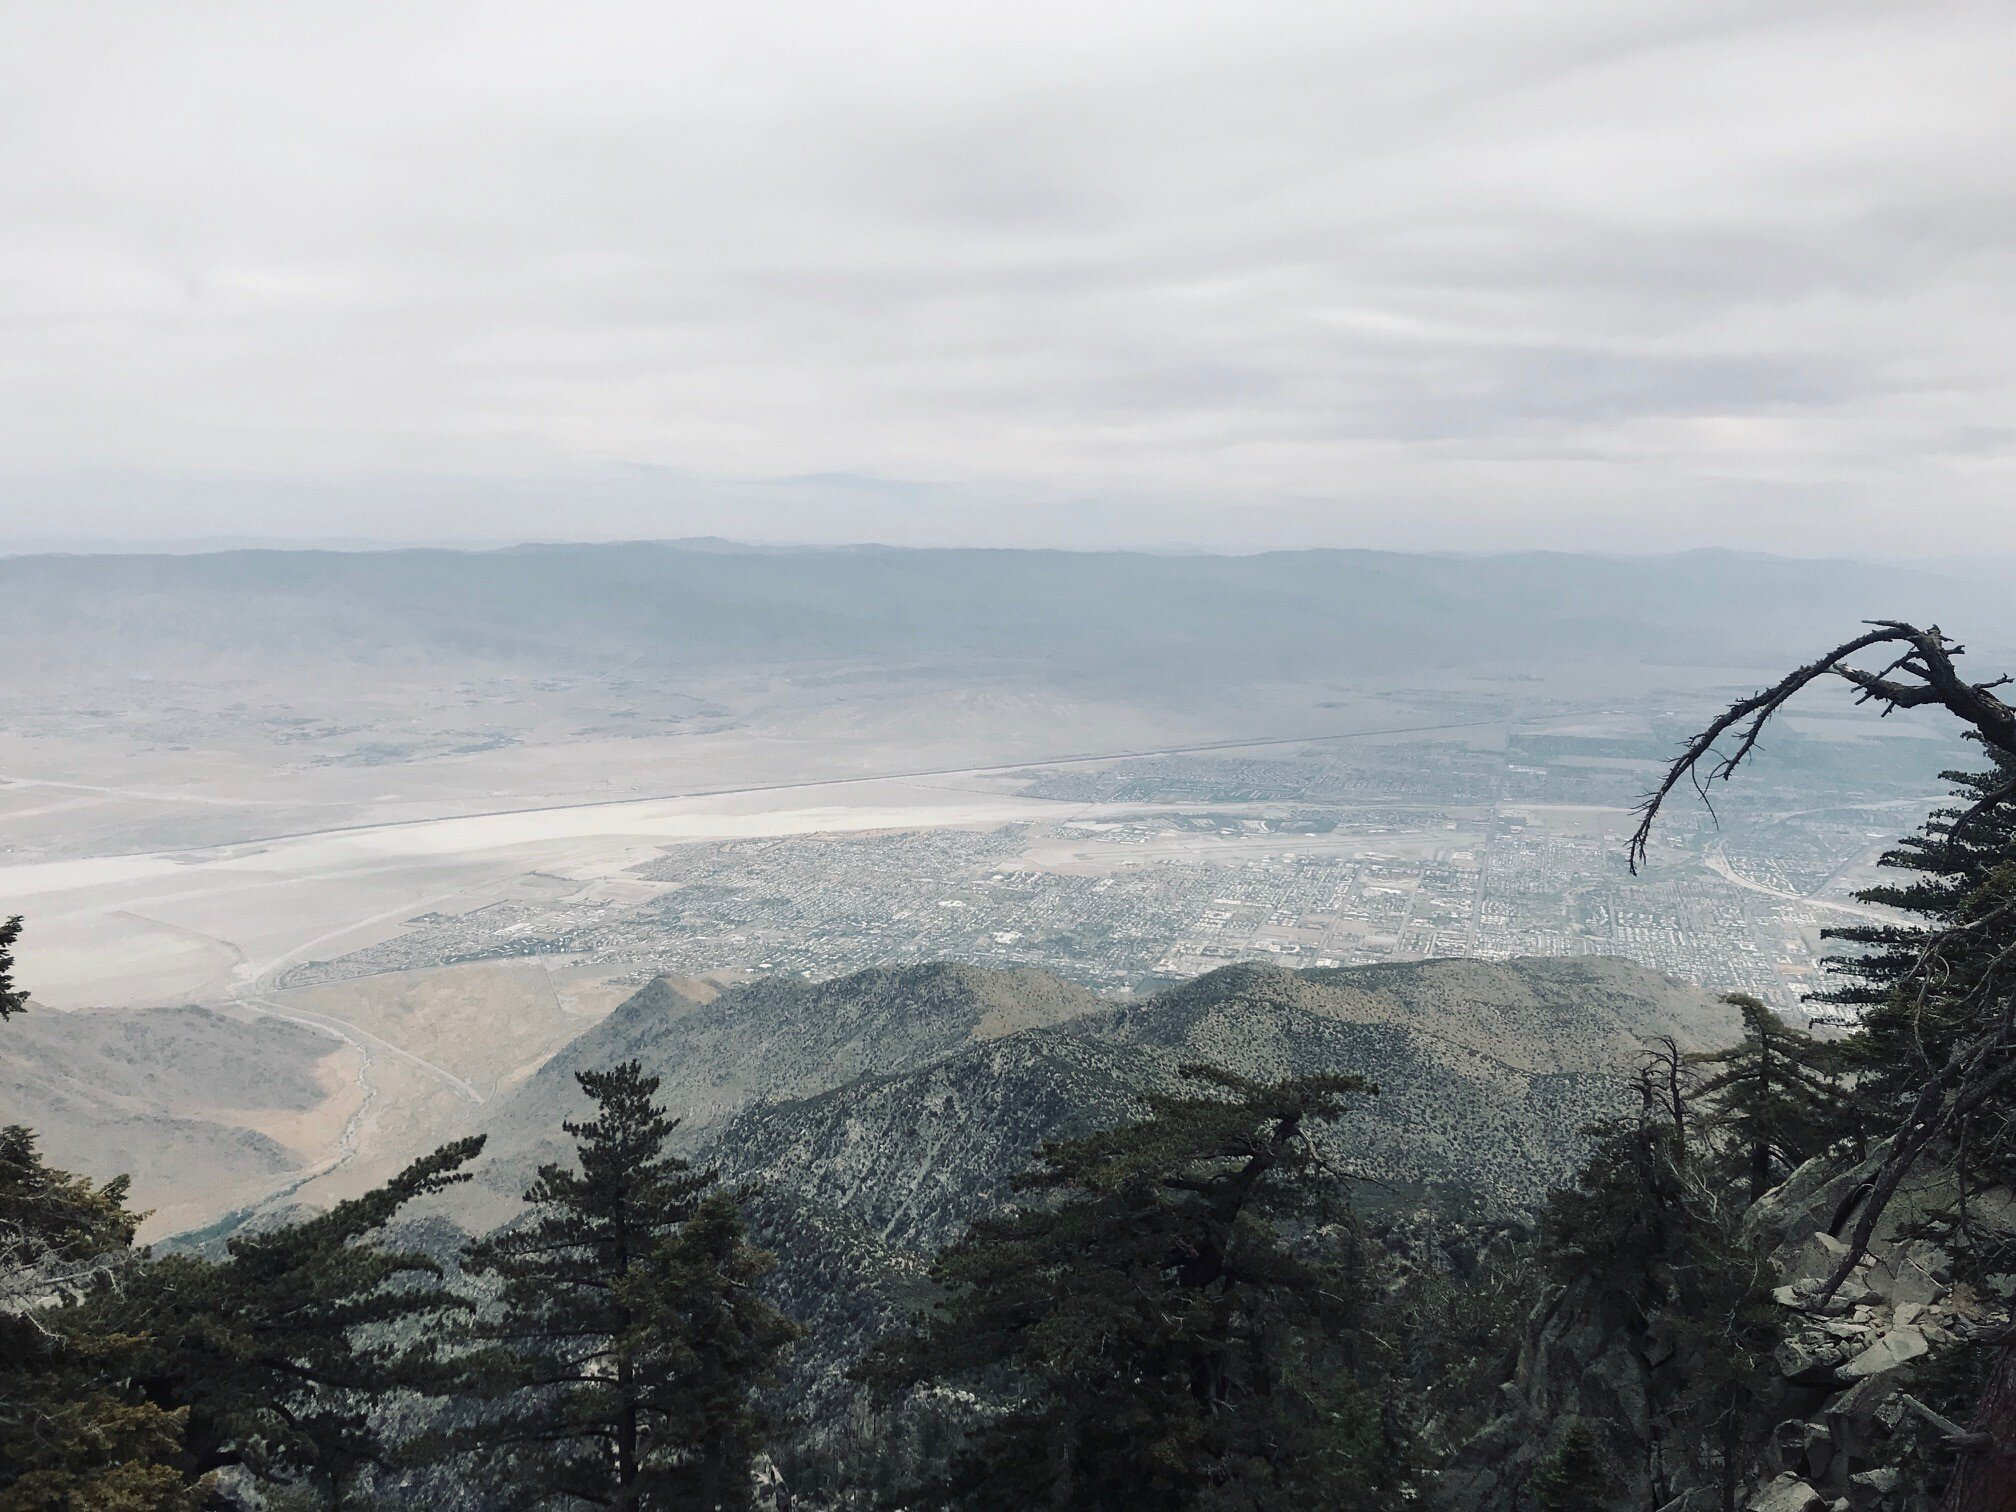 The view from Mt. San Jacinto